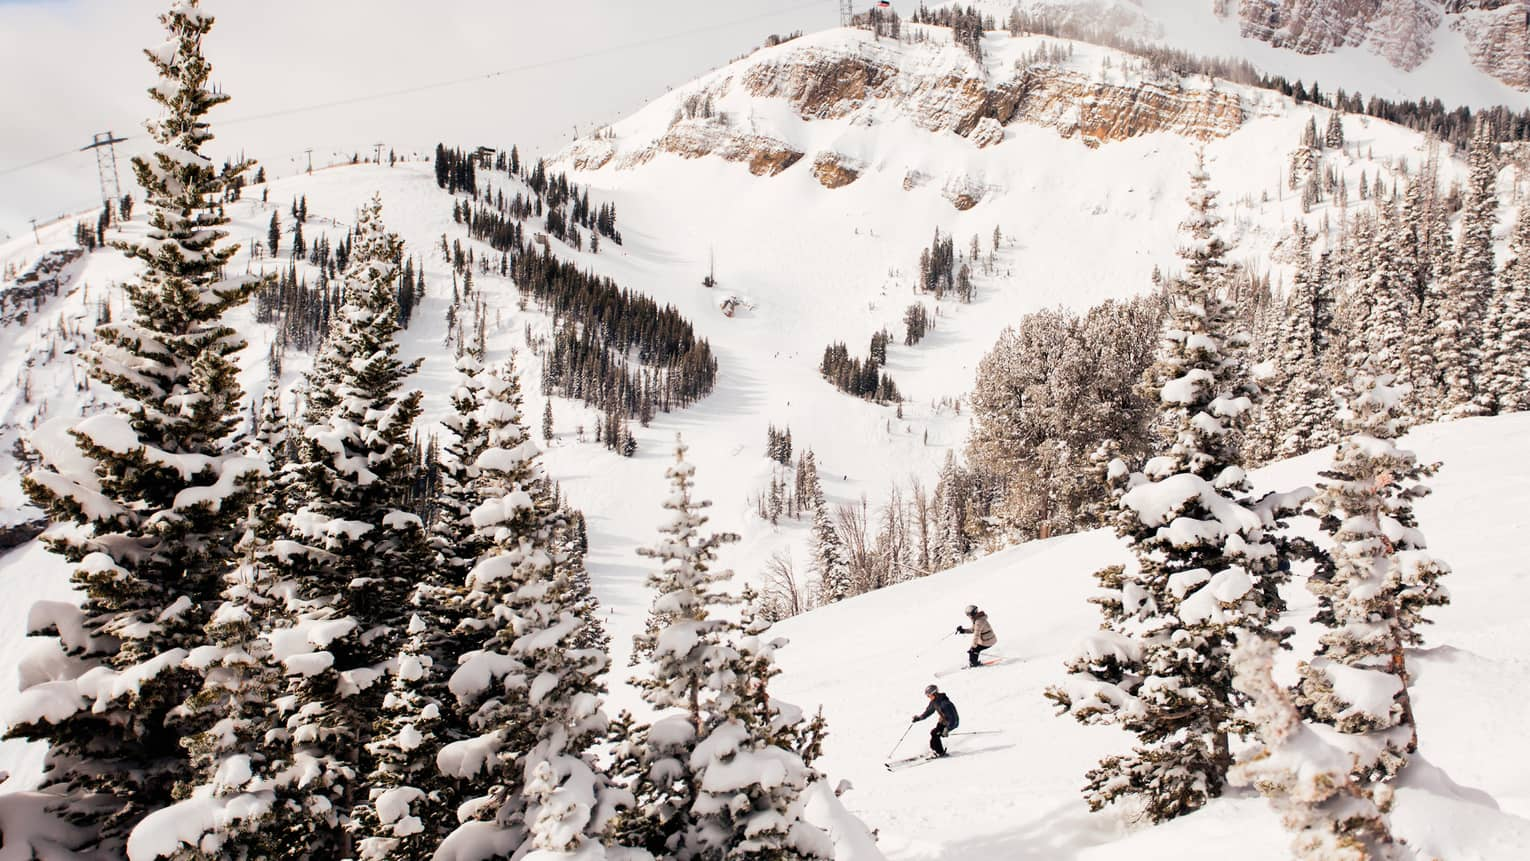 Aerial view of two skiers high up on mountain slope between trees